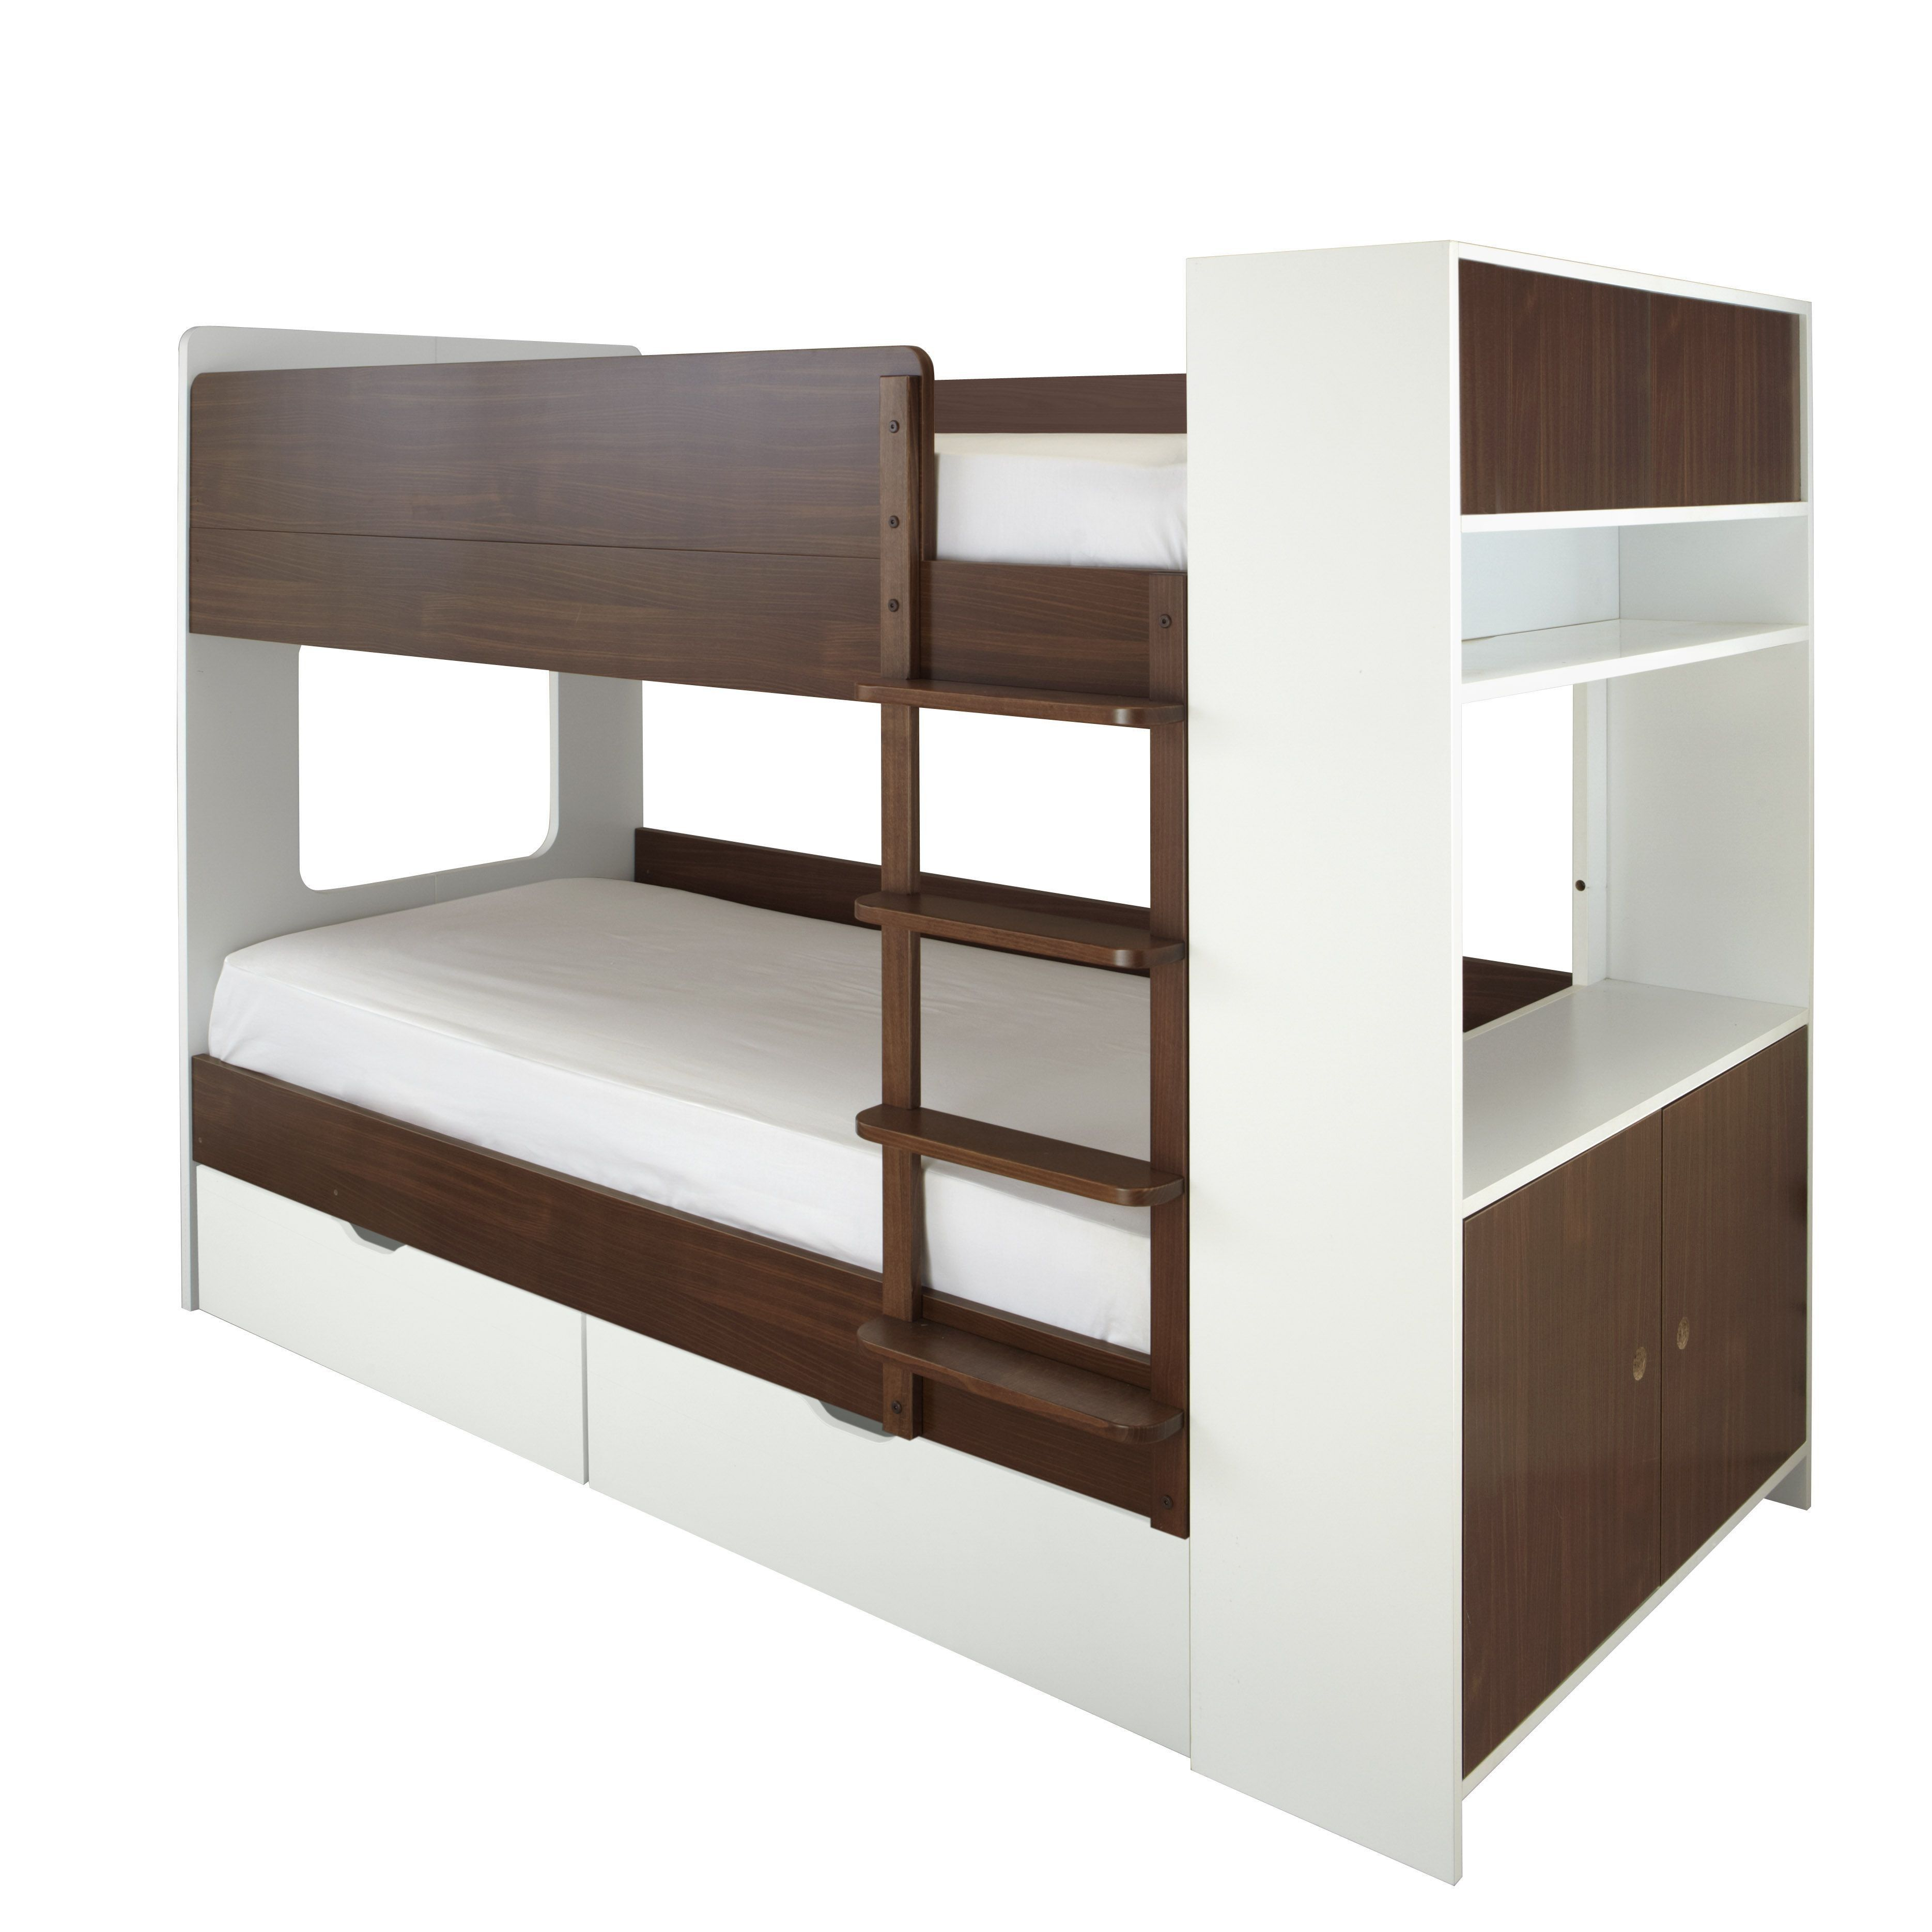 Coco Bunk a sleek and modern children's bunk bed